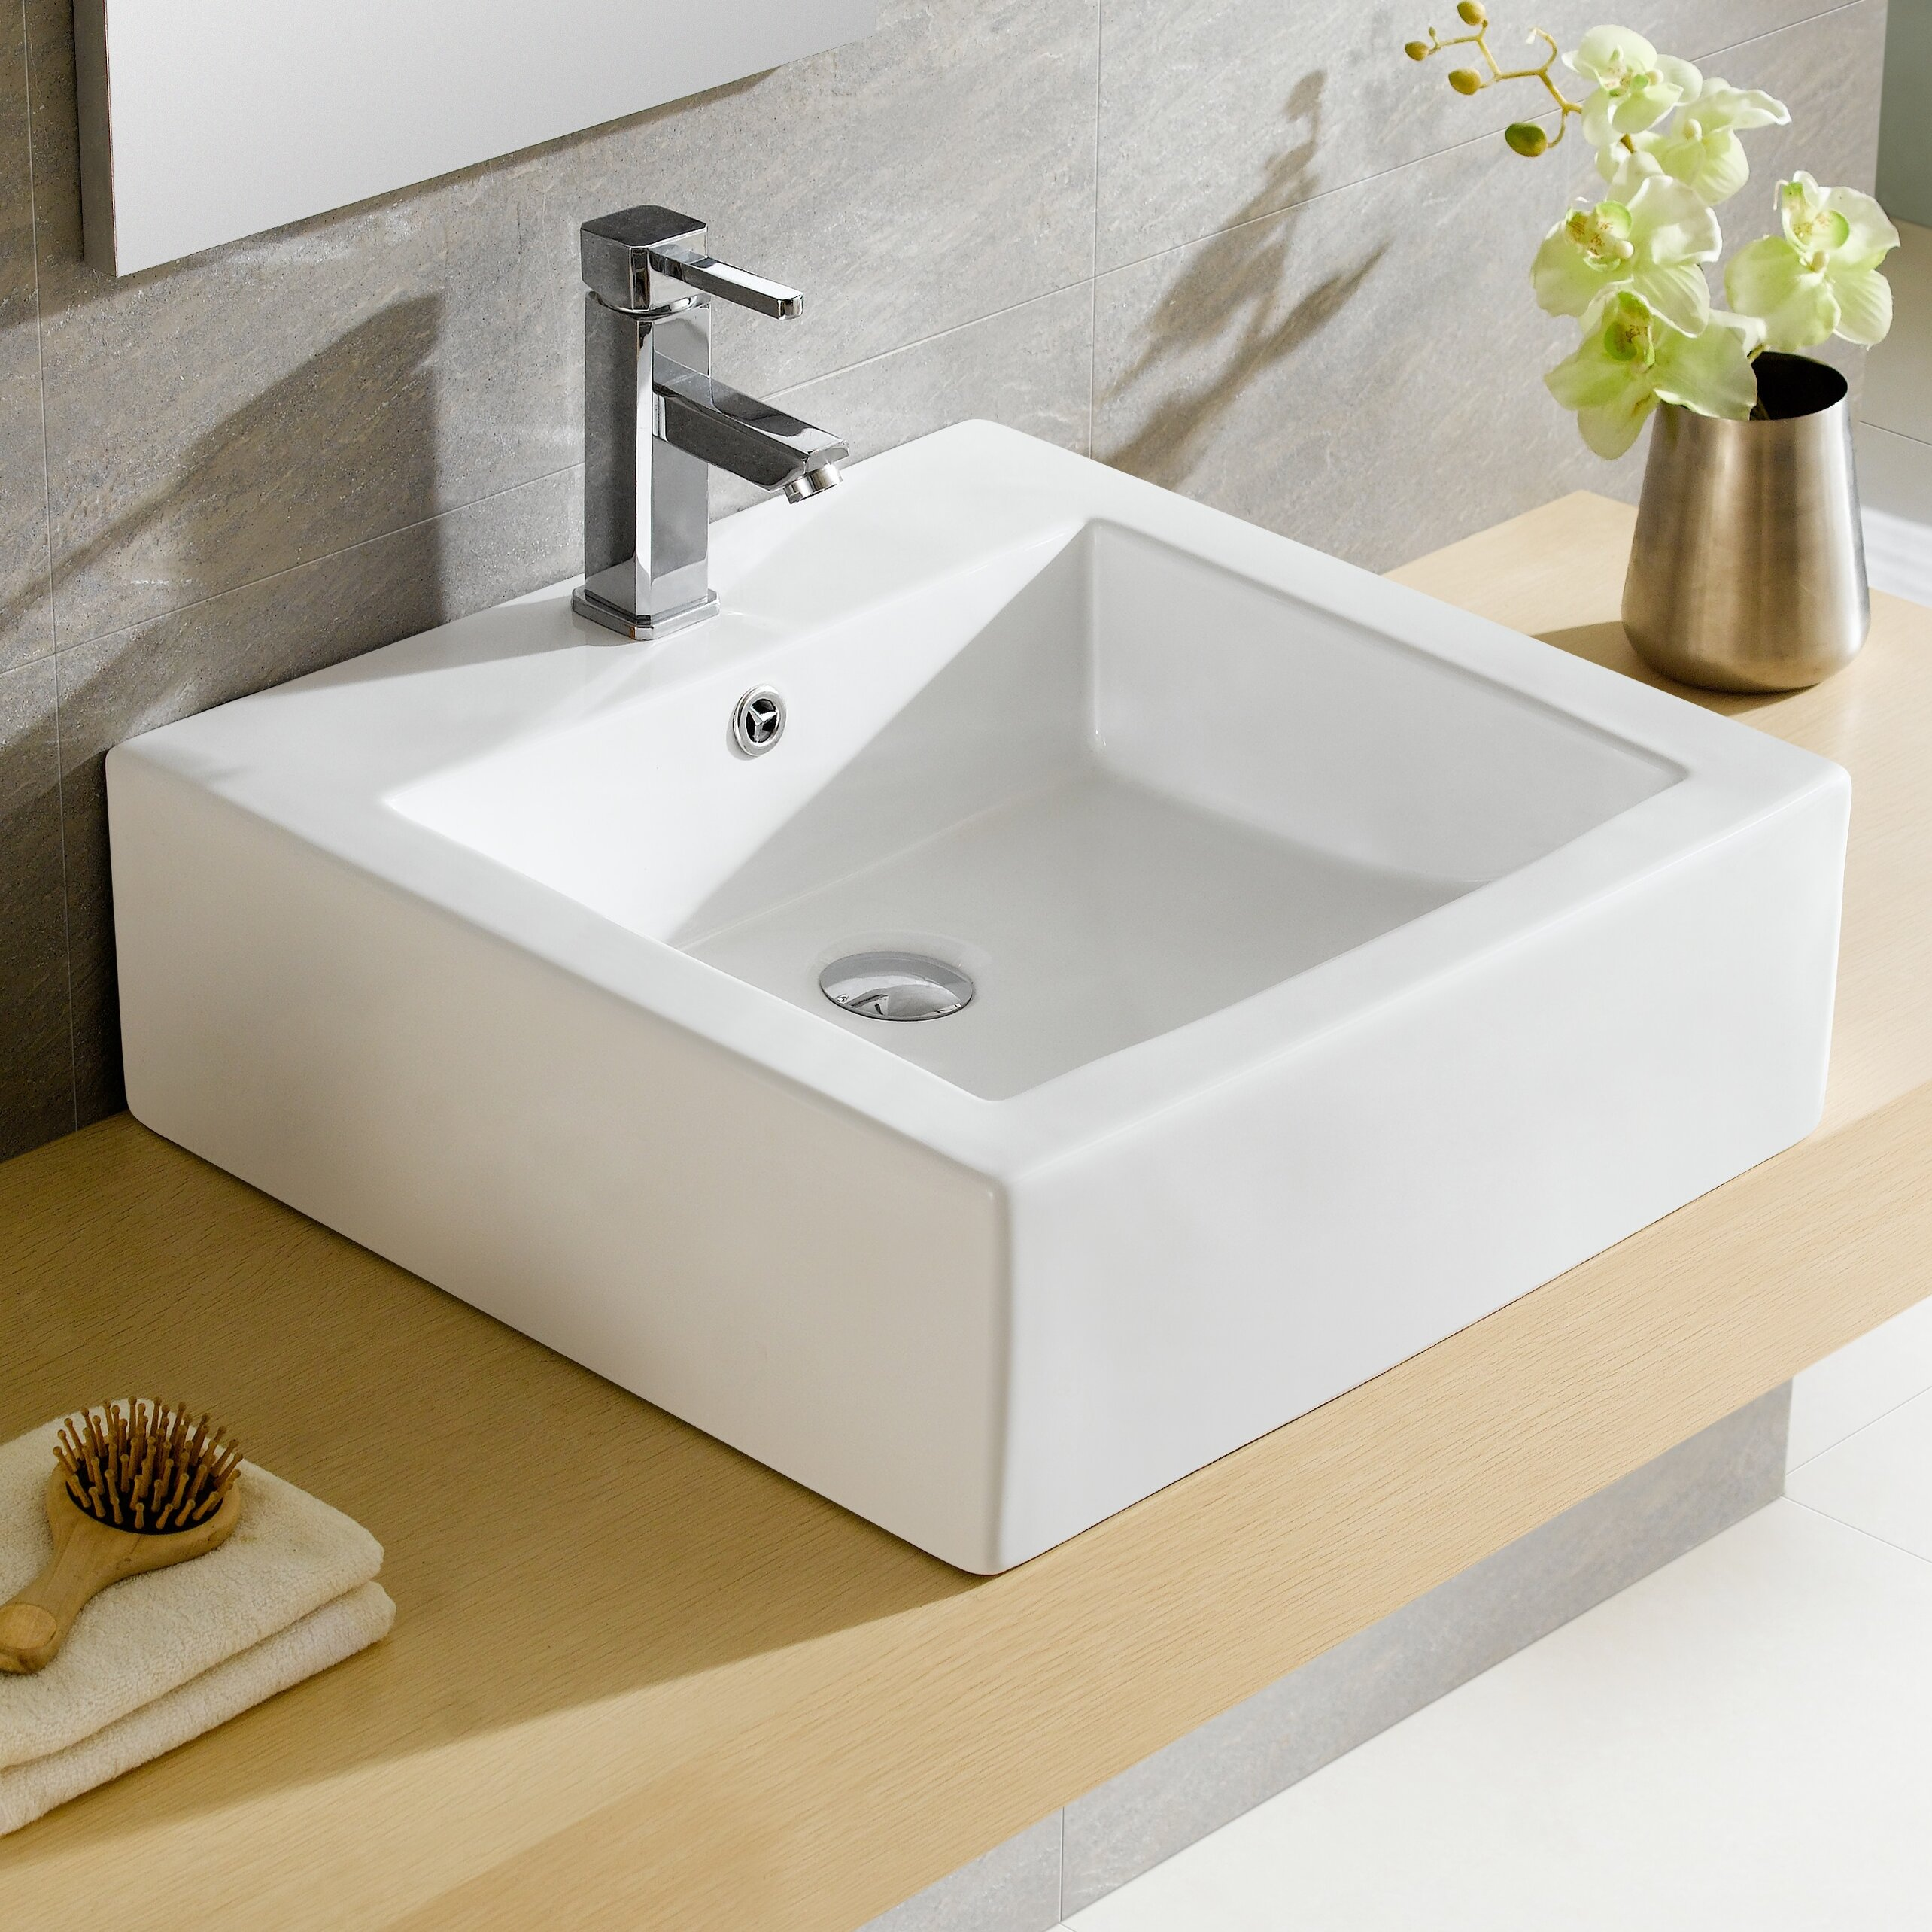 Square bathroom sinks - Fine Fixtures Modern Vitreous Square Modern Vessel Bathroom Sink